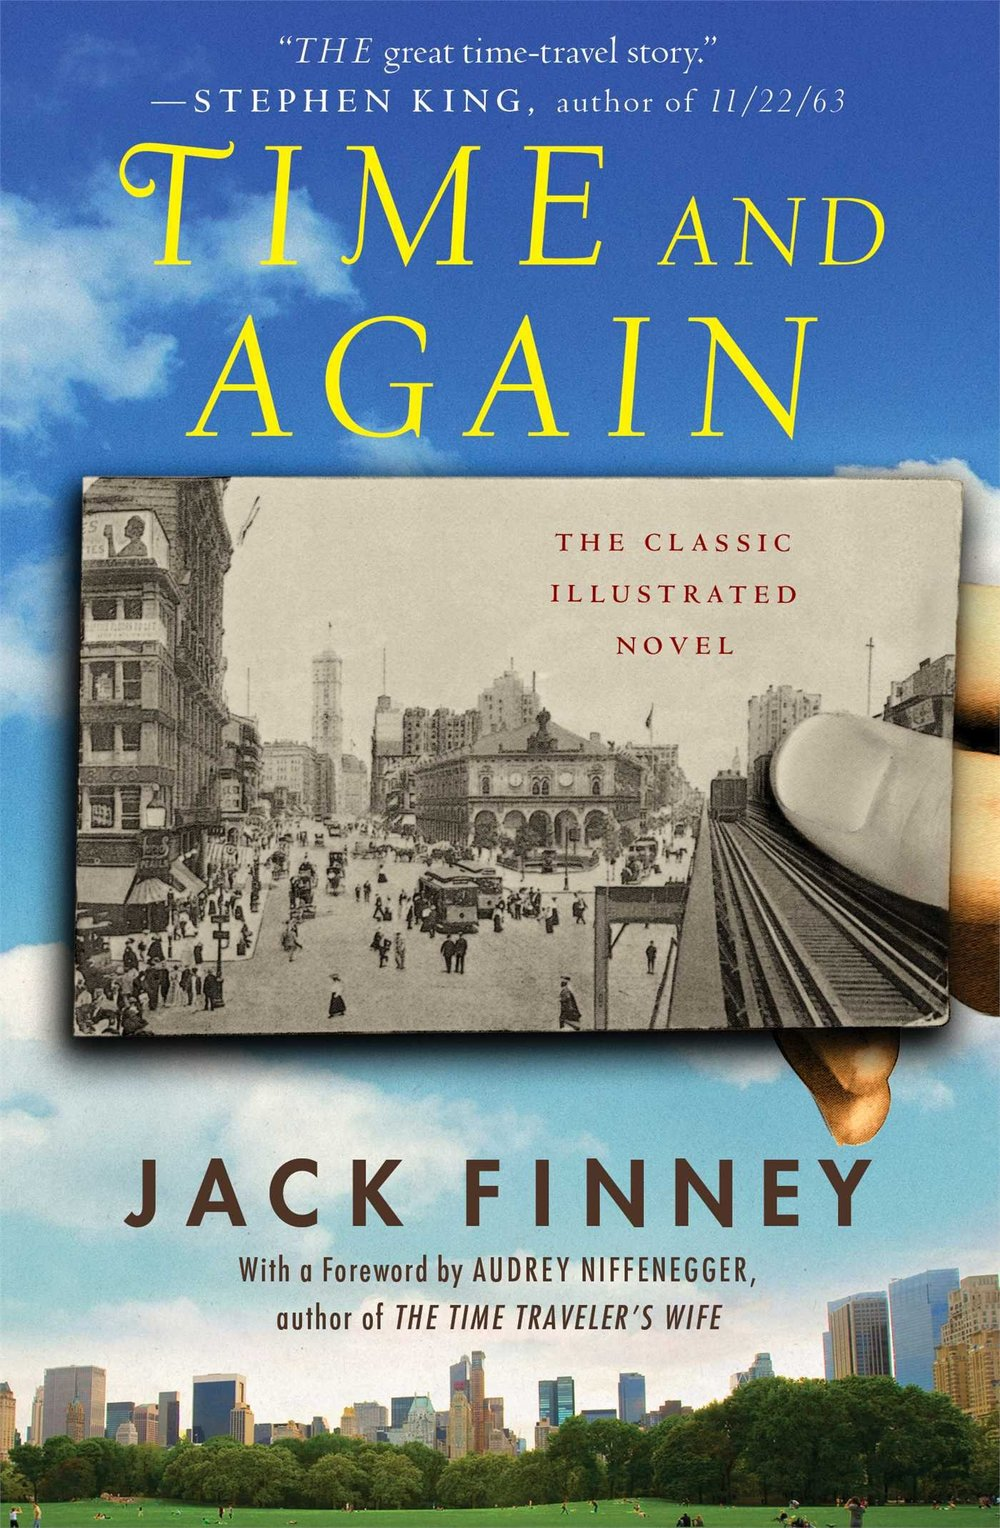 Jack Finney's 1970 novel Time and Again